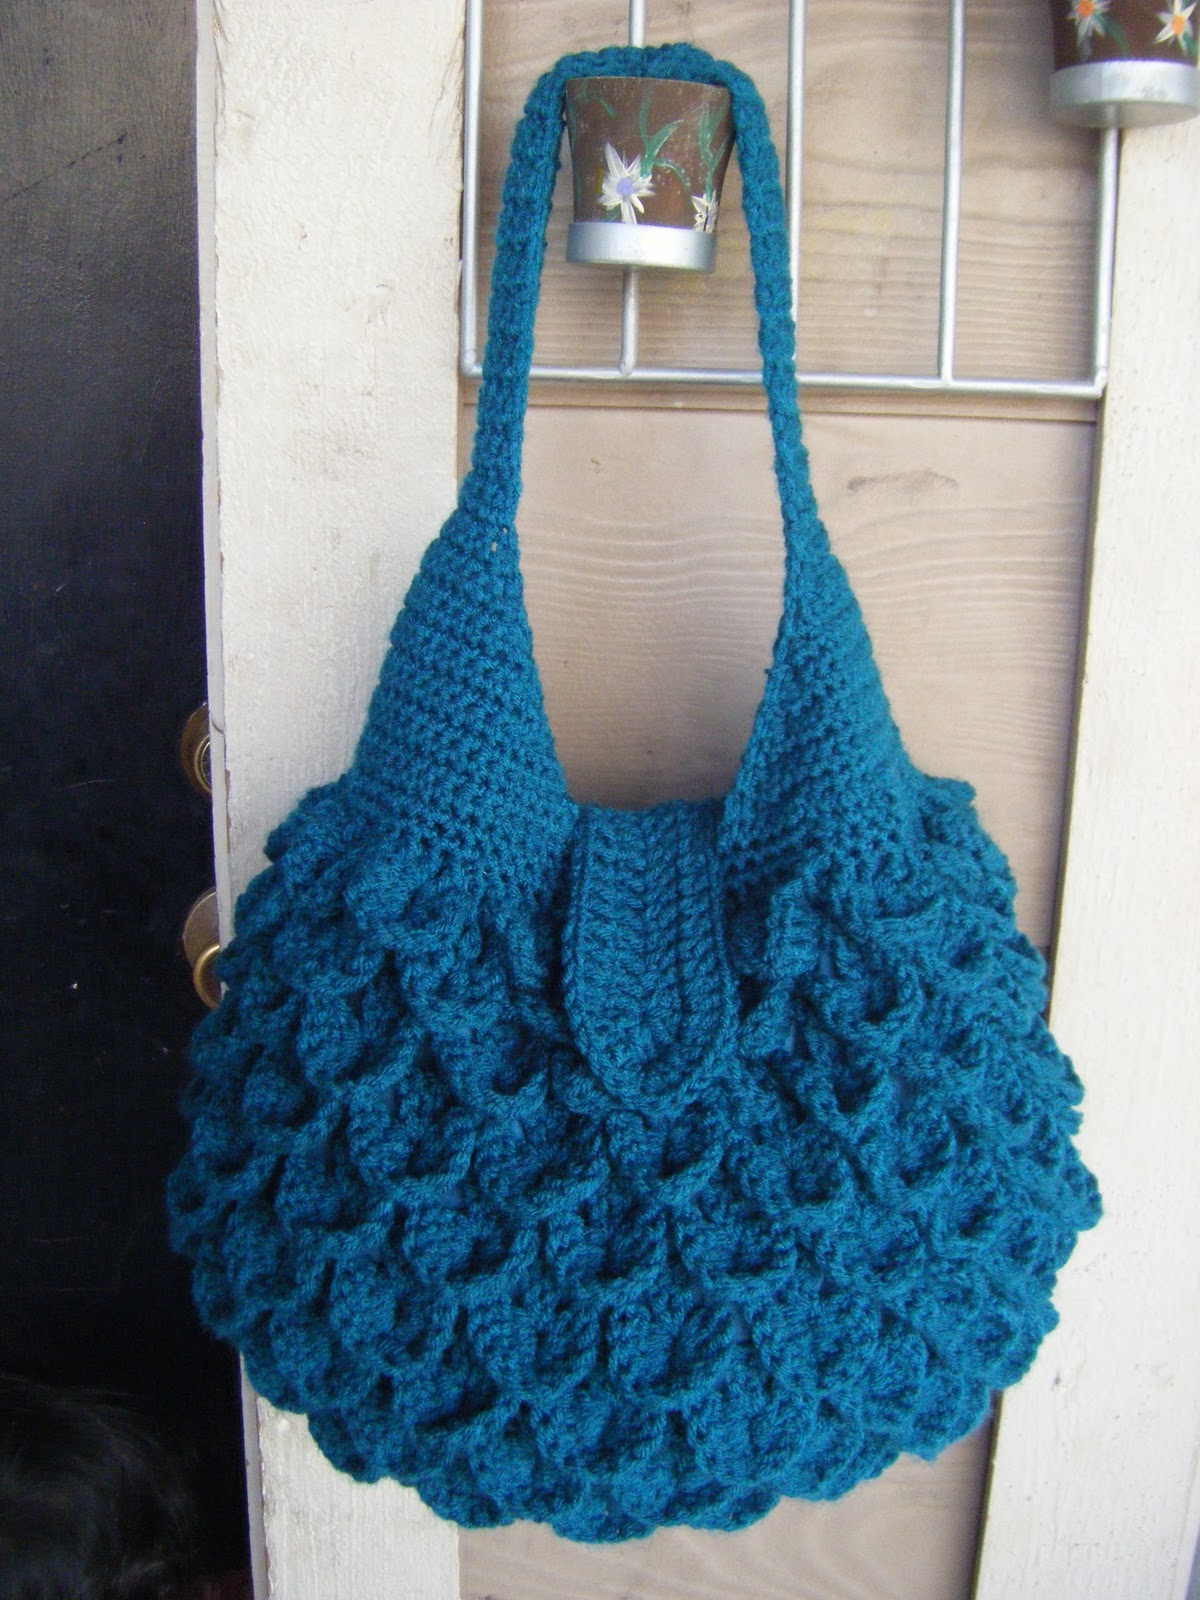 FREE CROCHET BAG PATTERNS Crochet Tutorials